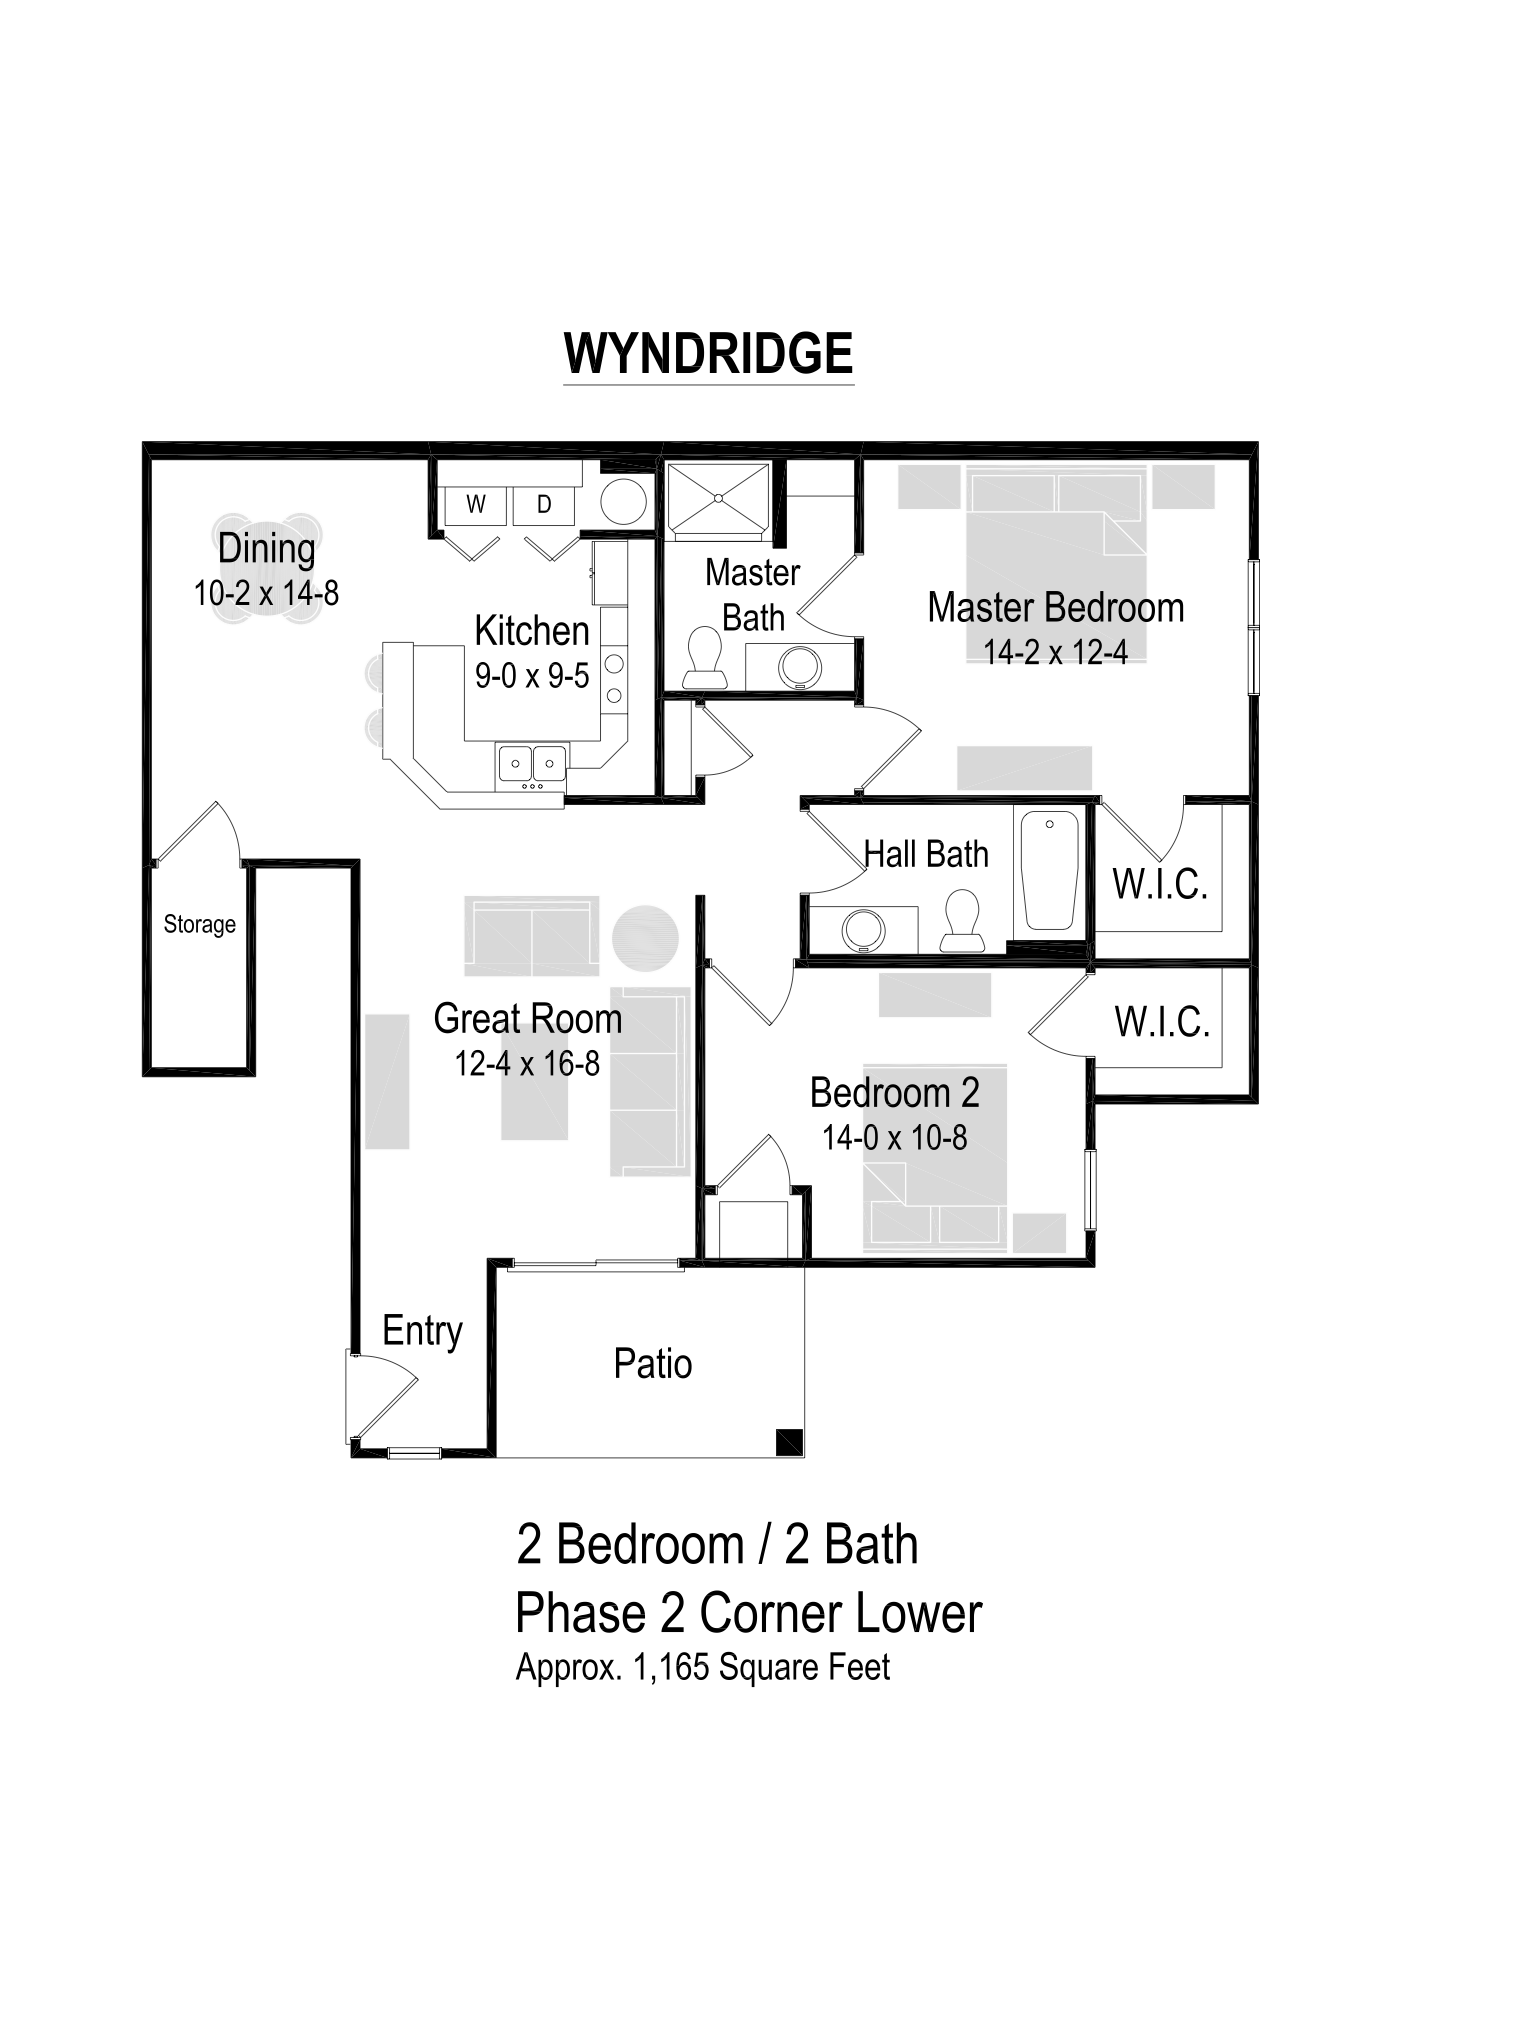 1165 Sq. Ft. Floor Plan